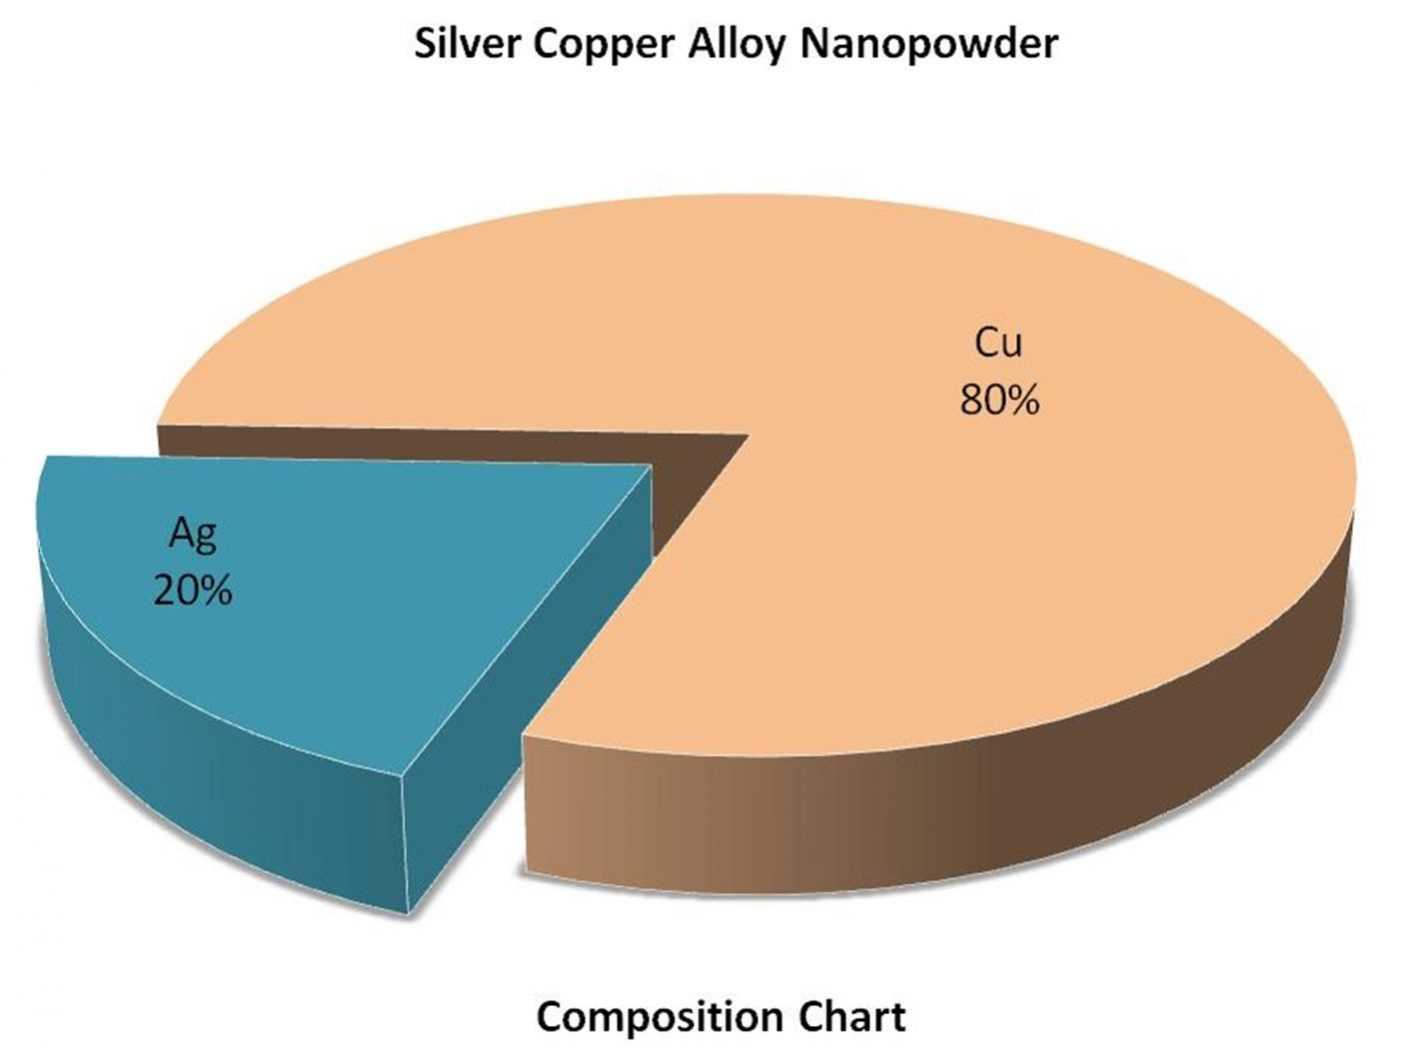 Composition Chart - Cu:Ag Alloy Nanoparticles